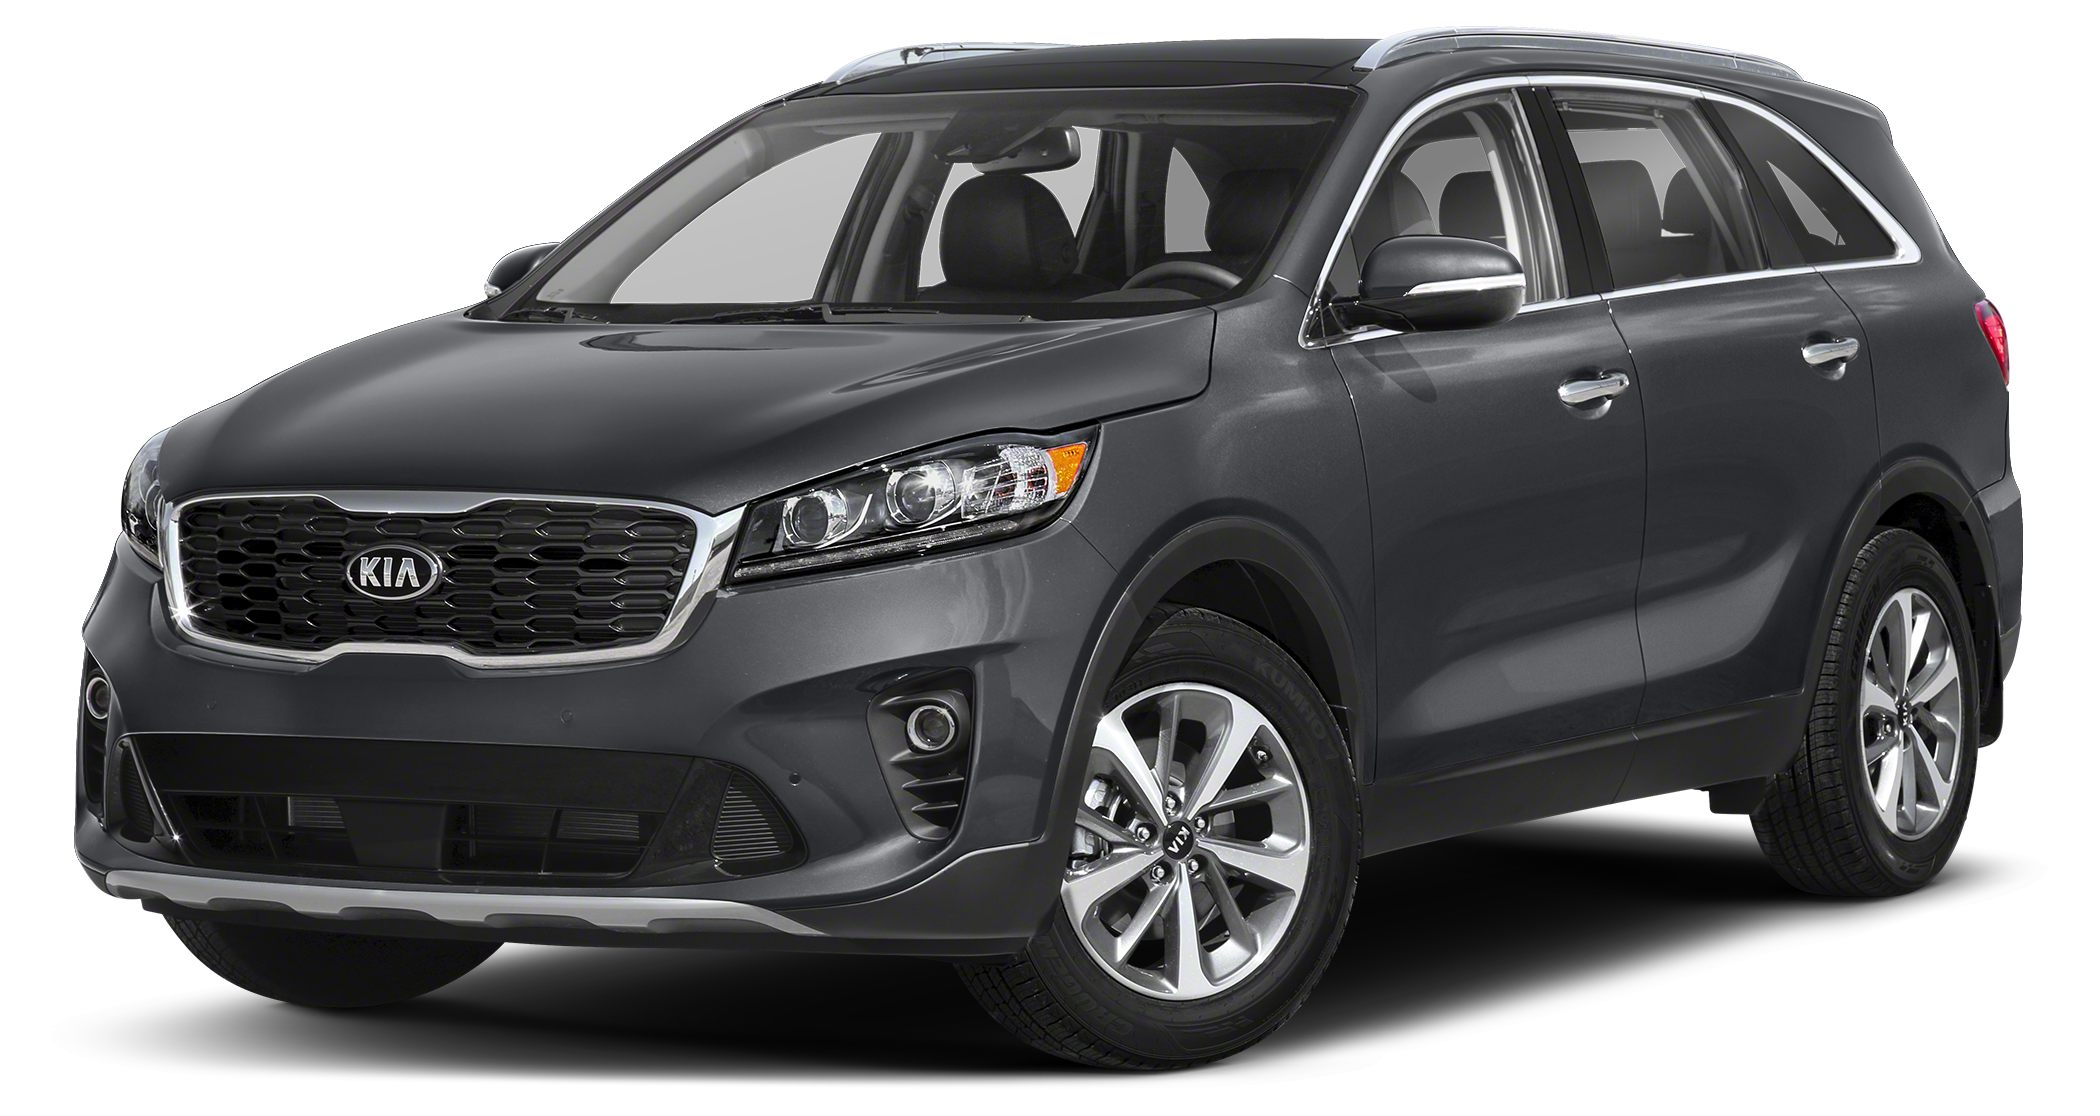 2019 Kia Sorento SXL Ready for anything If youve been dreaming about just the right 2019 Kia So